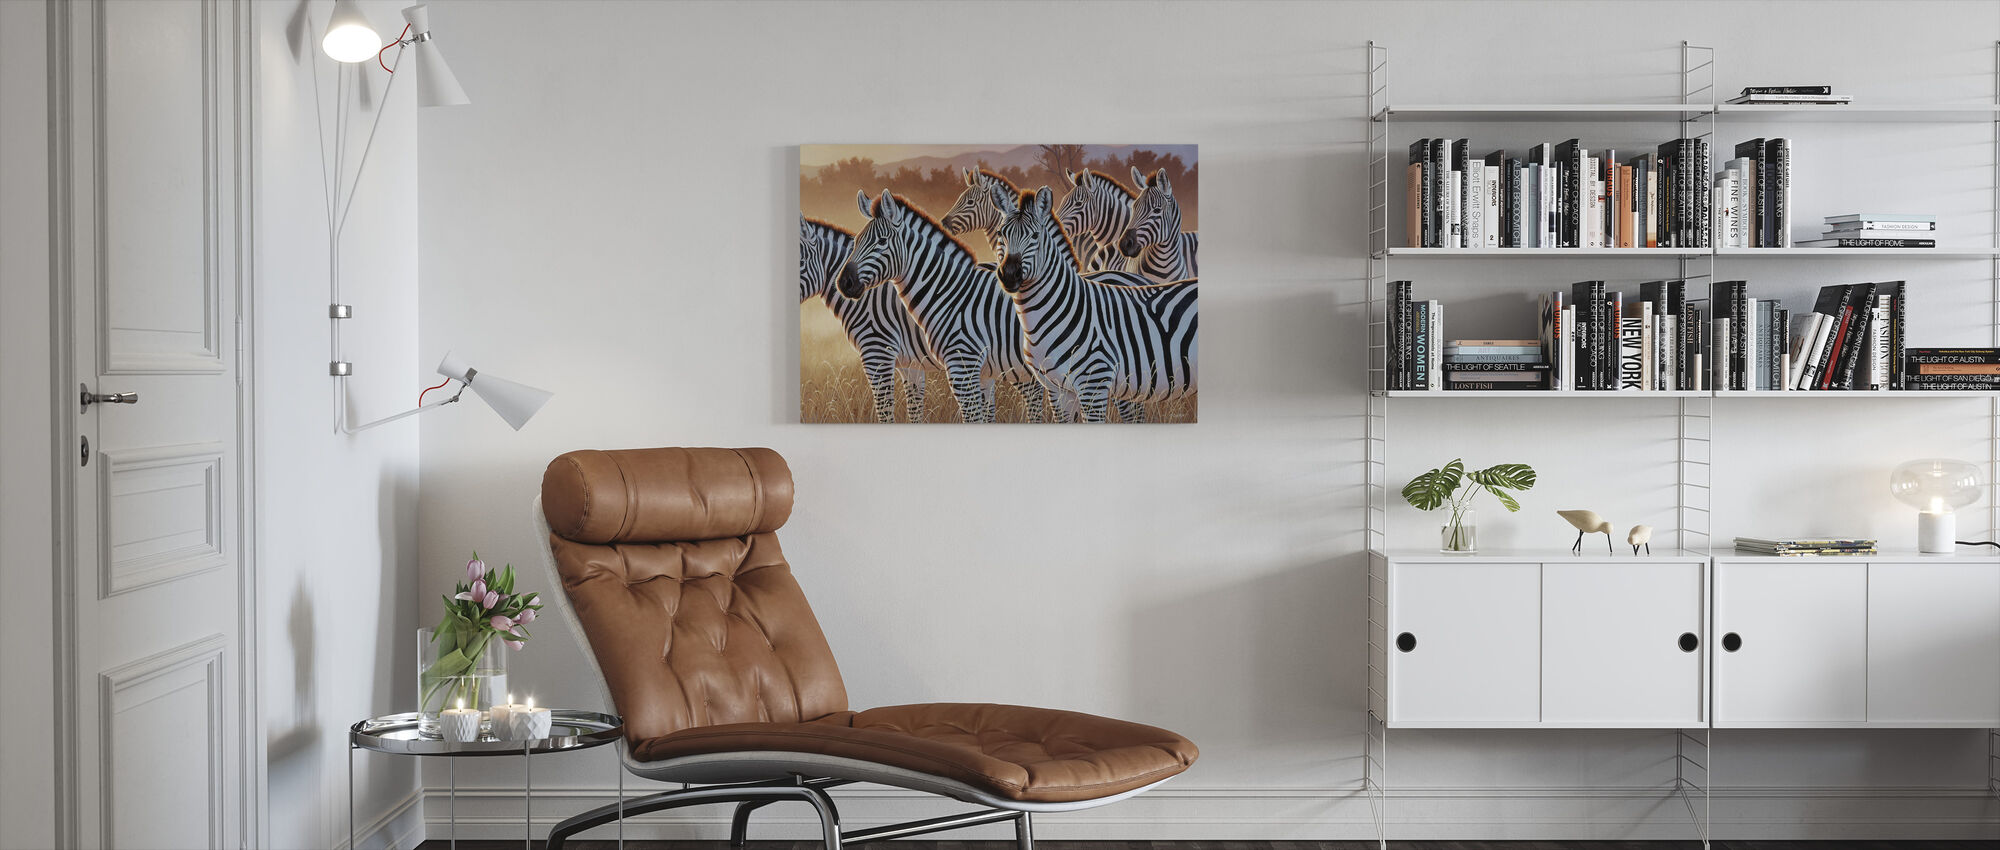 Zebras in a Group - Canvas print - Living Room